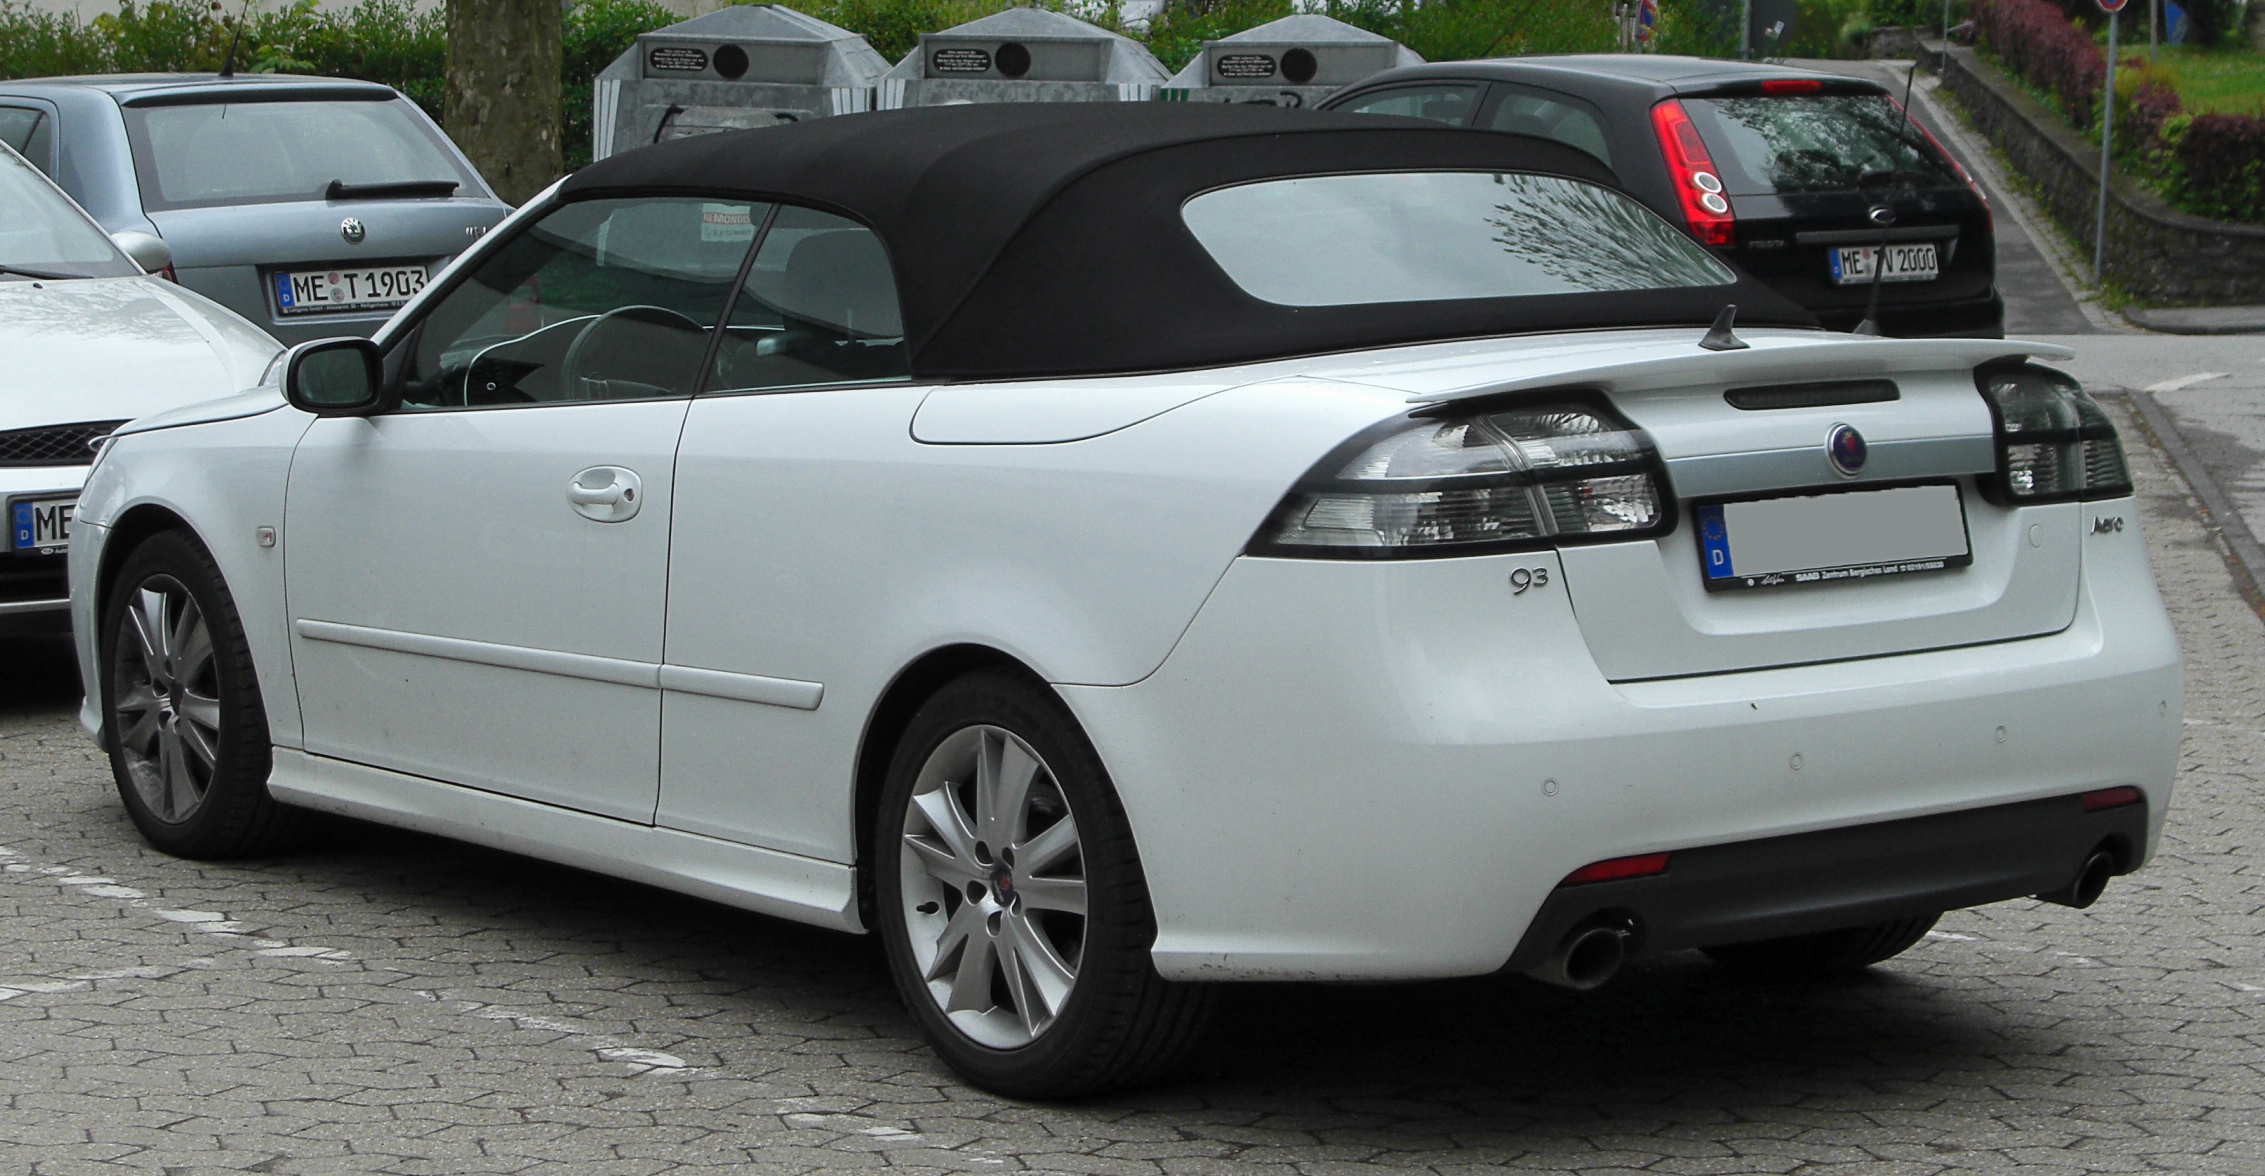 file saab 9 3 cabrio aero ii facelift rear wikimedia commons. Black Bedroom Furniture Sets. Home Design Ideas